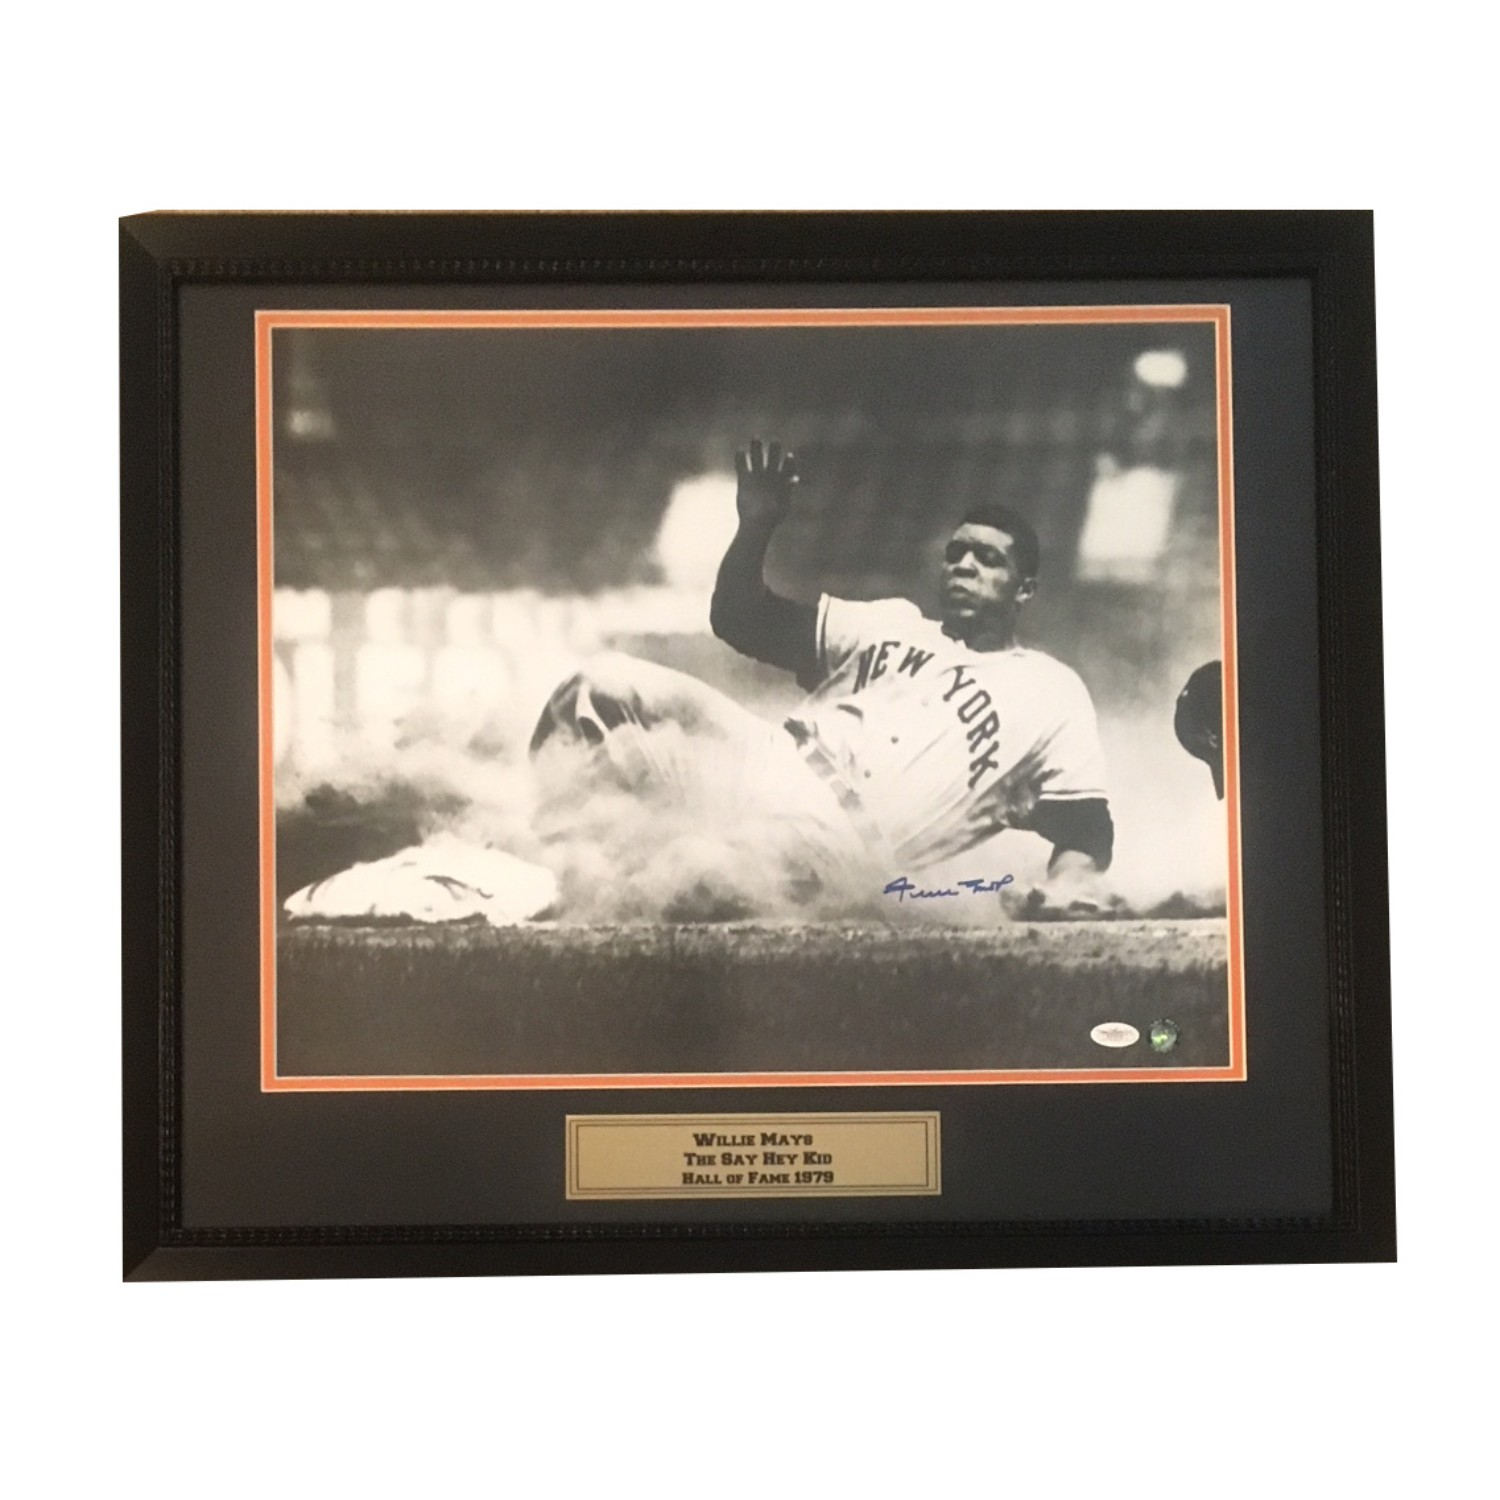 Willie Mays Autographed San Francisco Giants Signed 16x20 Framed Baseball Photo JSA